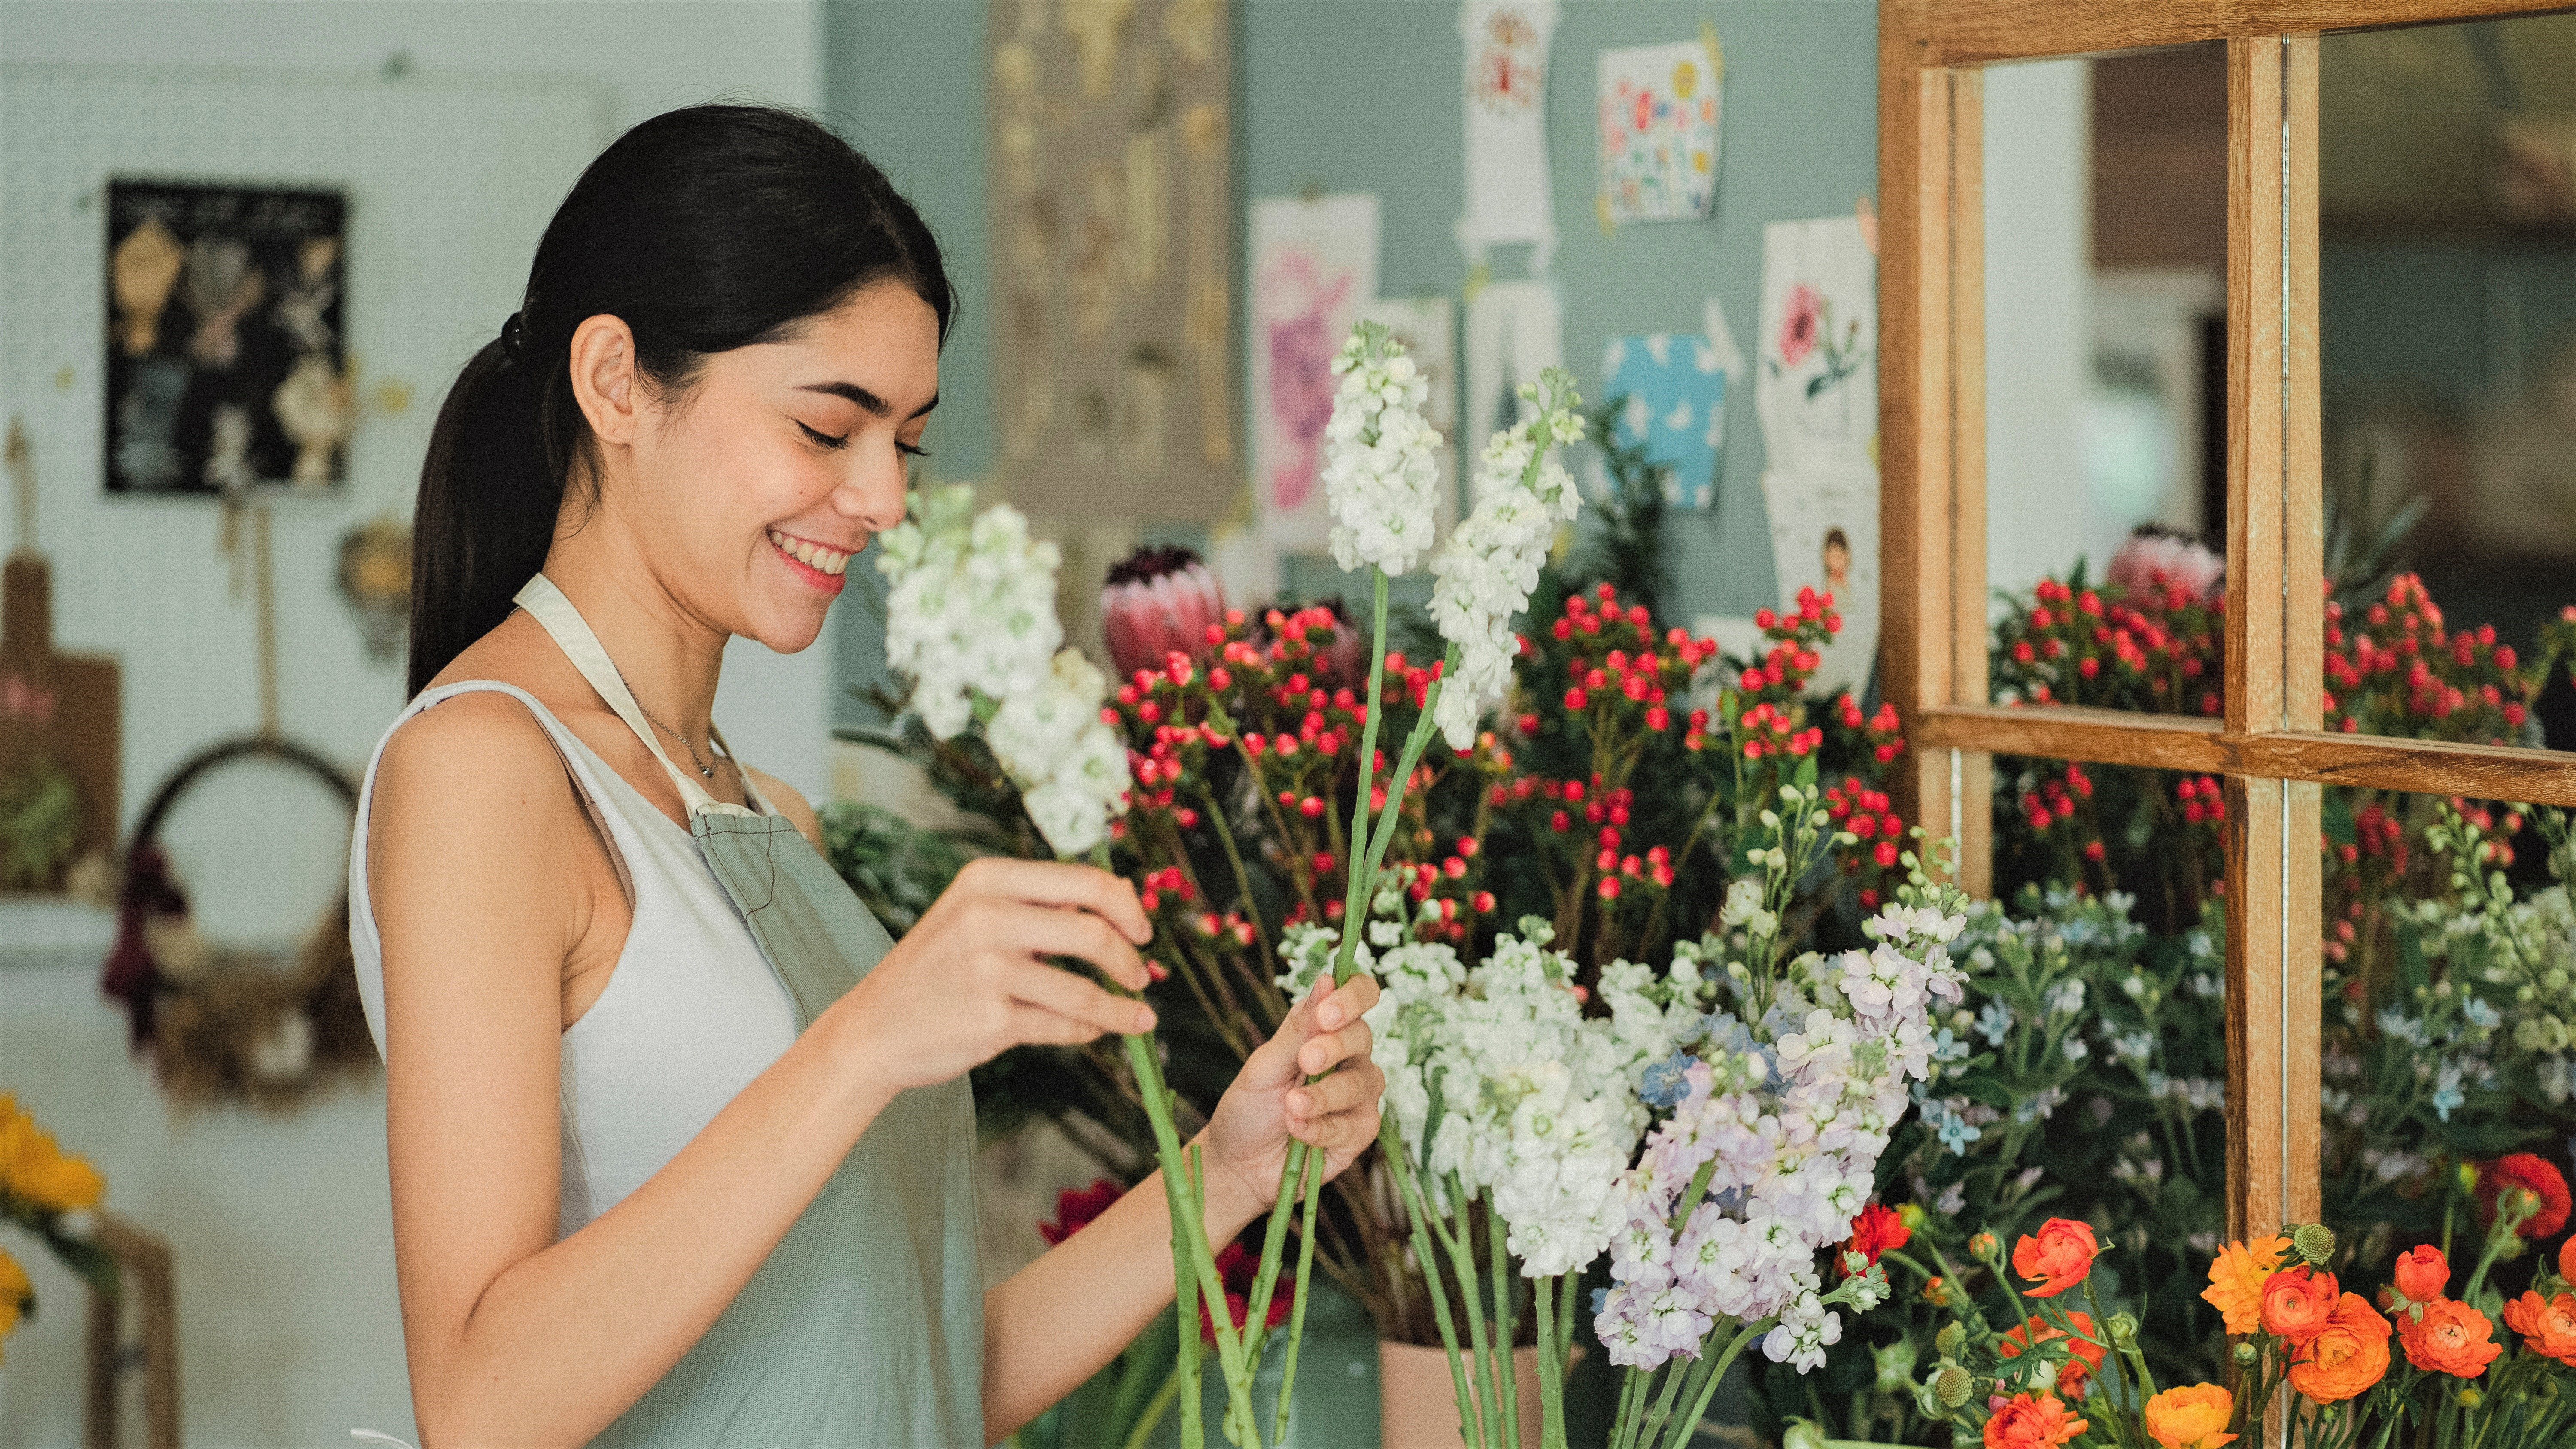 woman placing flowers in a vase in a flower shop